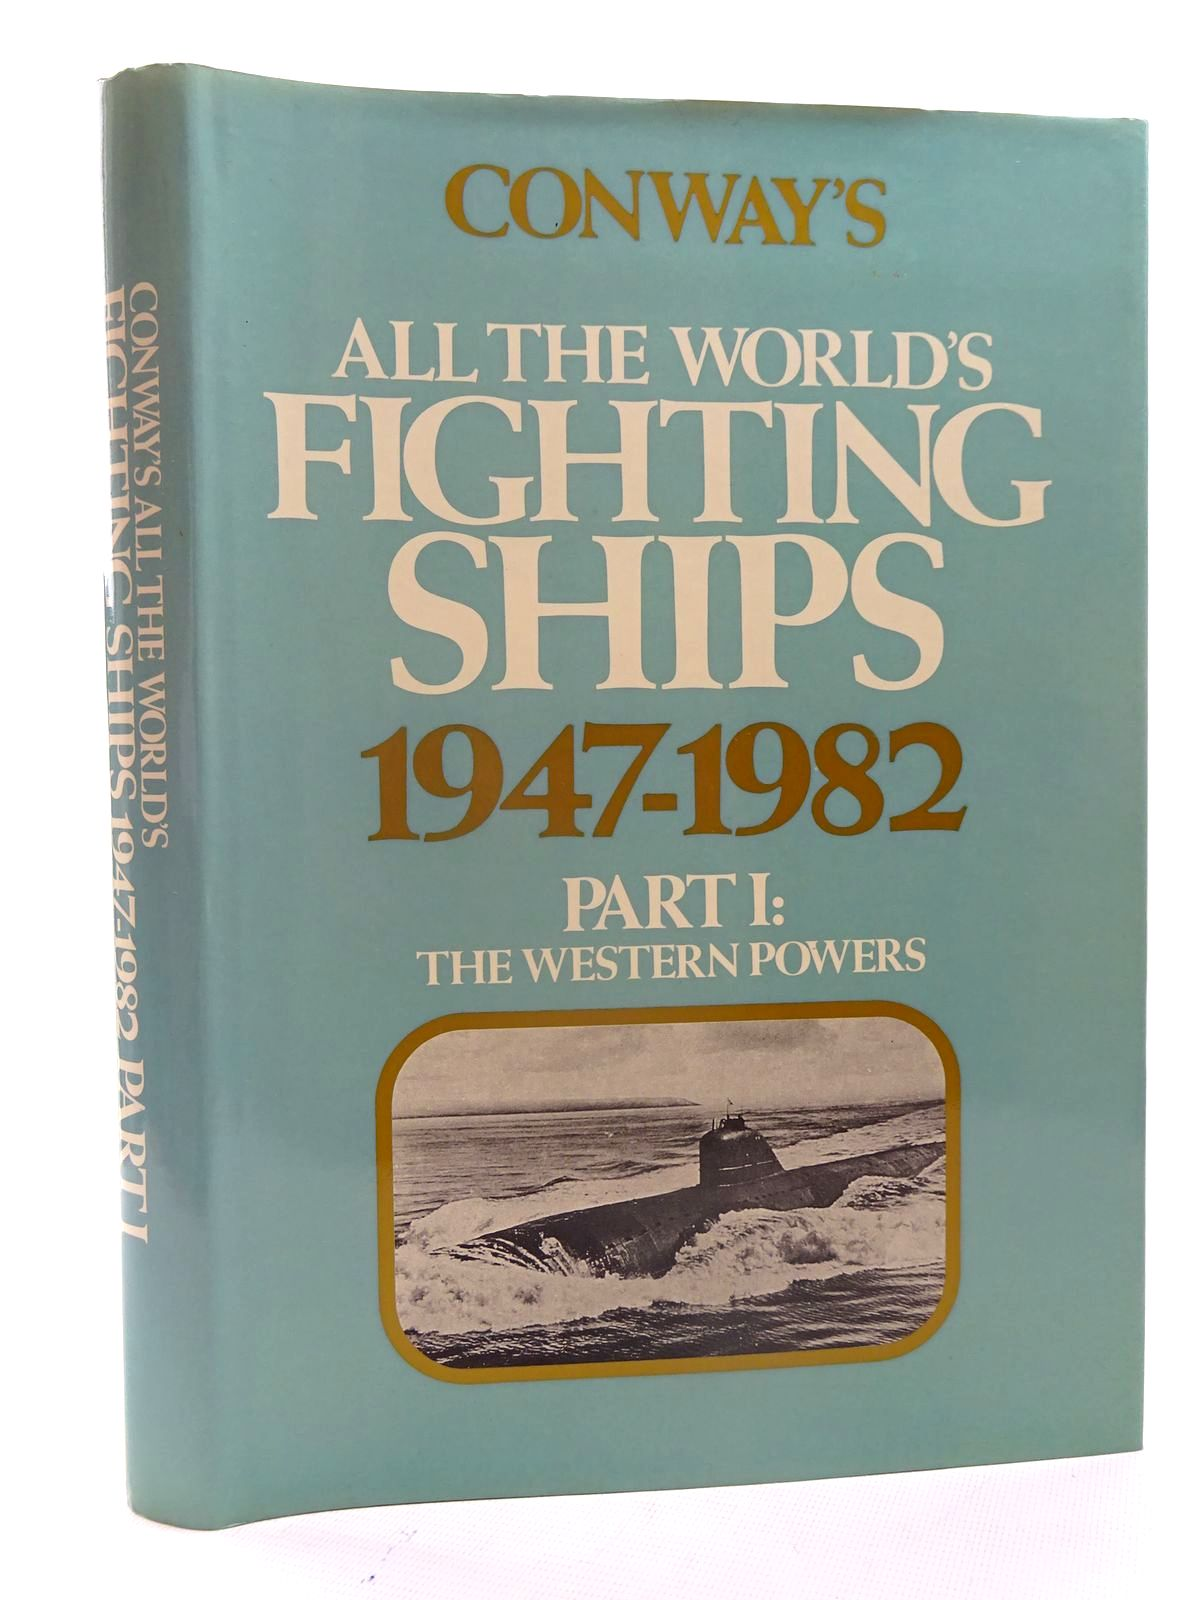 Photo of CONWAY'S ALL THE WORLD'S FIGHTING SHIPS 1947-1982 PART I written by Gardiner, Robert published by Conway Maritime Press (STOCK CODE: 2125468)  for sale by Stella & Rose's Books